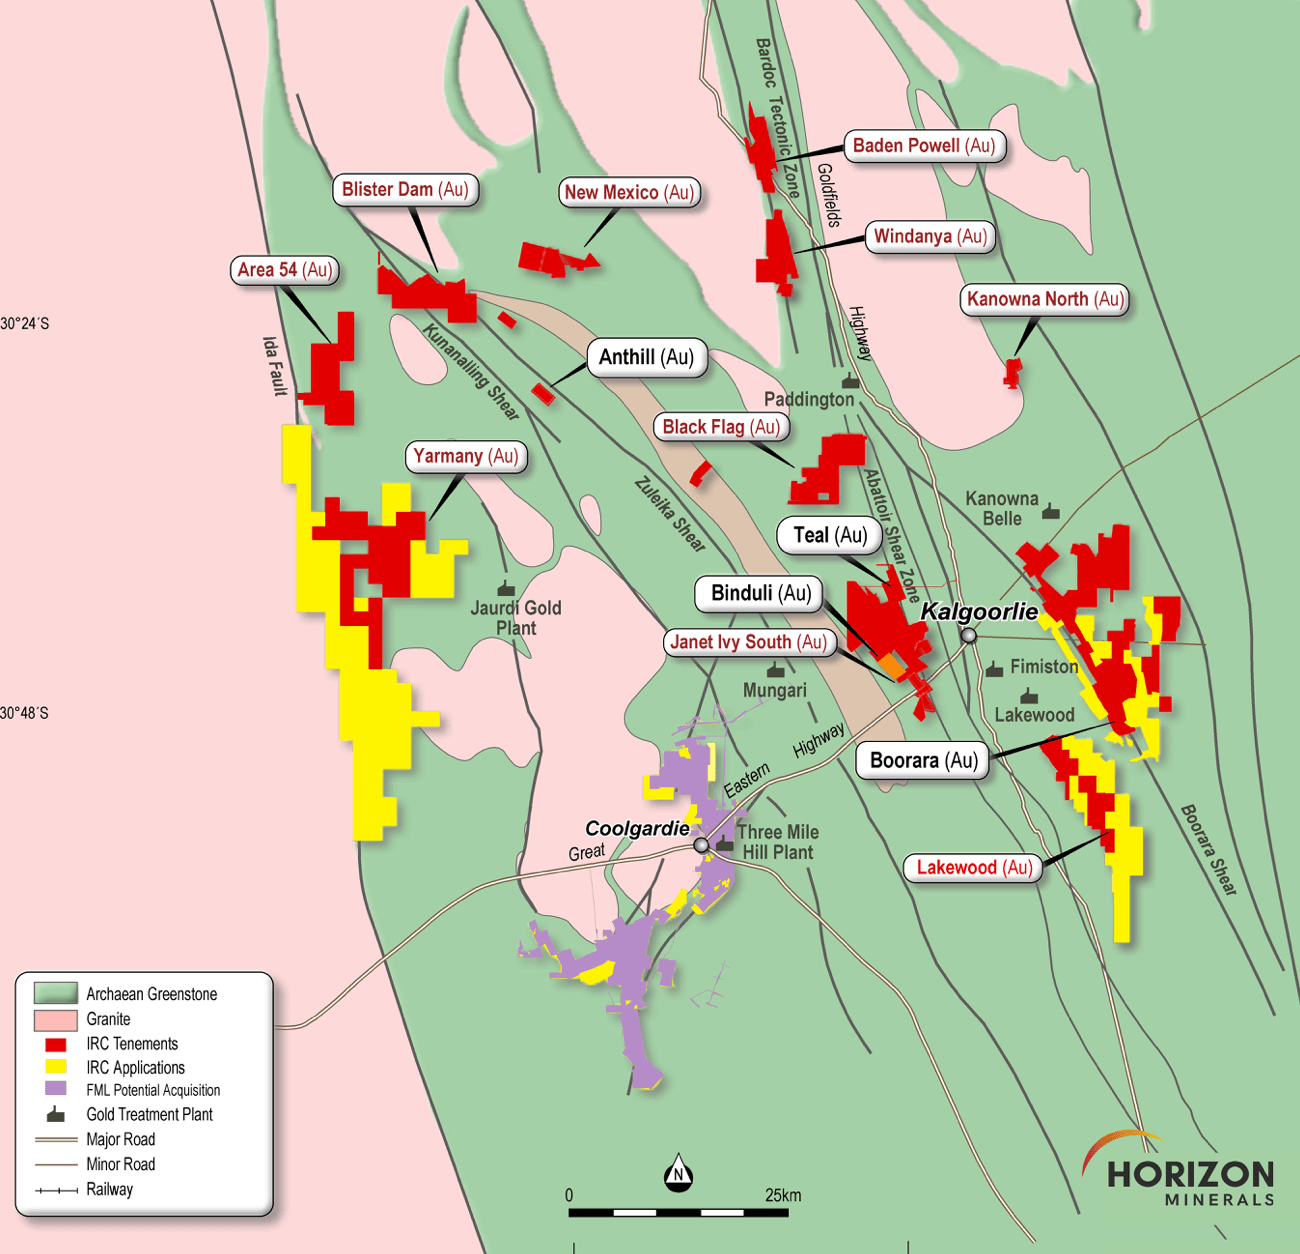 Horizon Minerals (ASX: HRZ) - Mid-tier gold producer